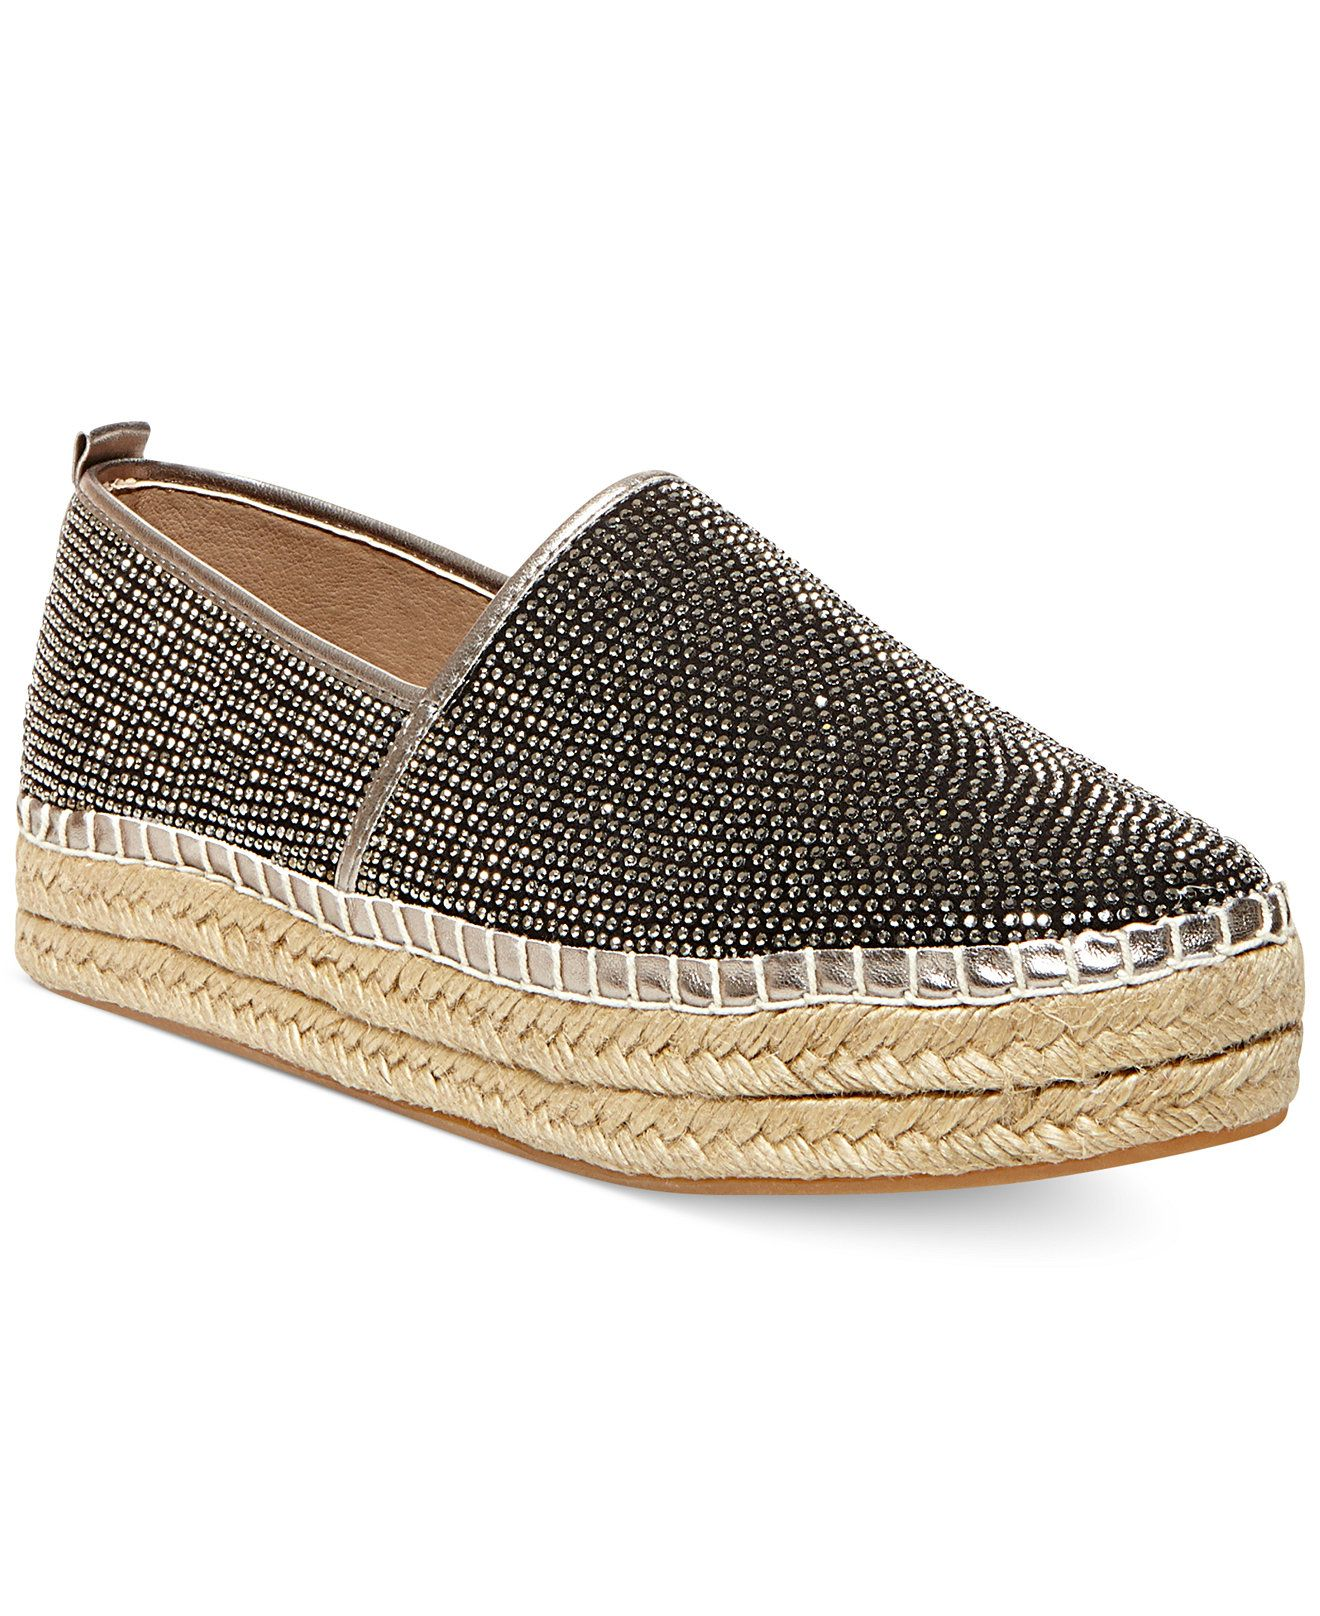 Steve Madden Choppur-R Rhinestone Espadrille Flats - All Women's Shoes -  Shoes - Macy's